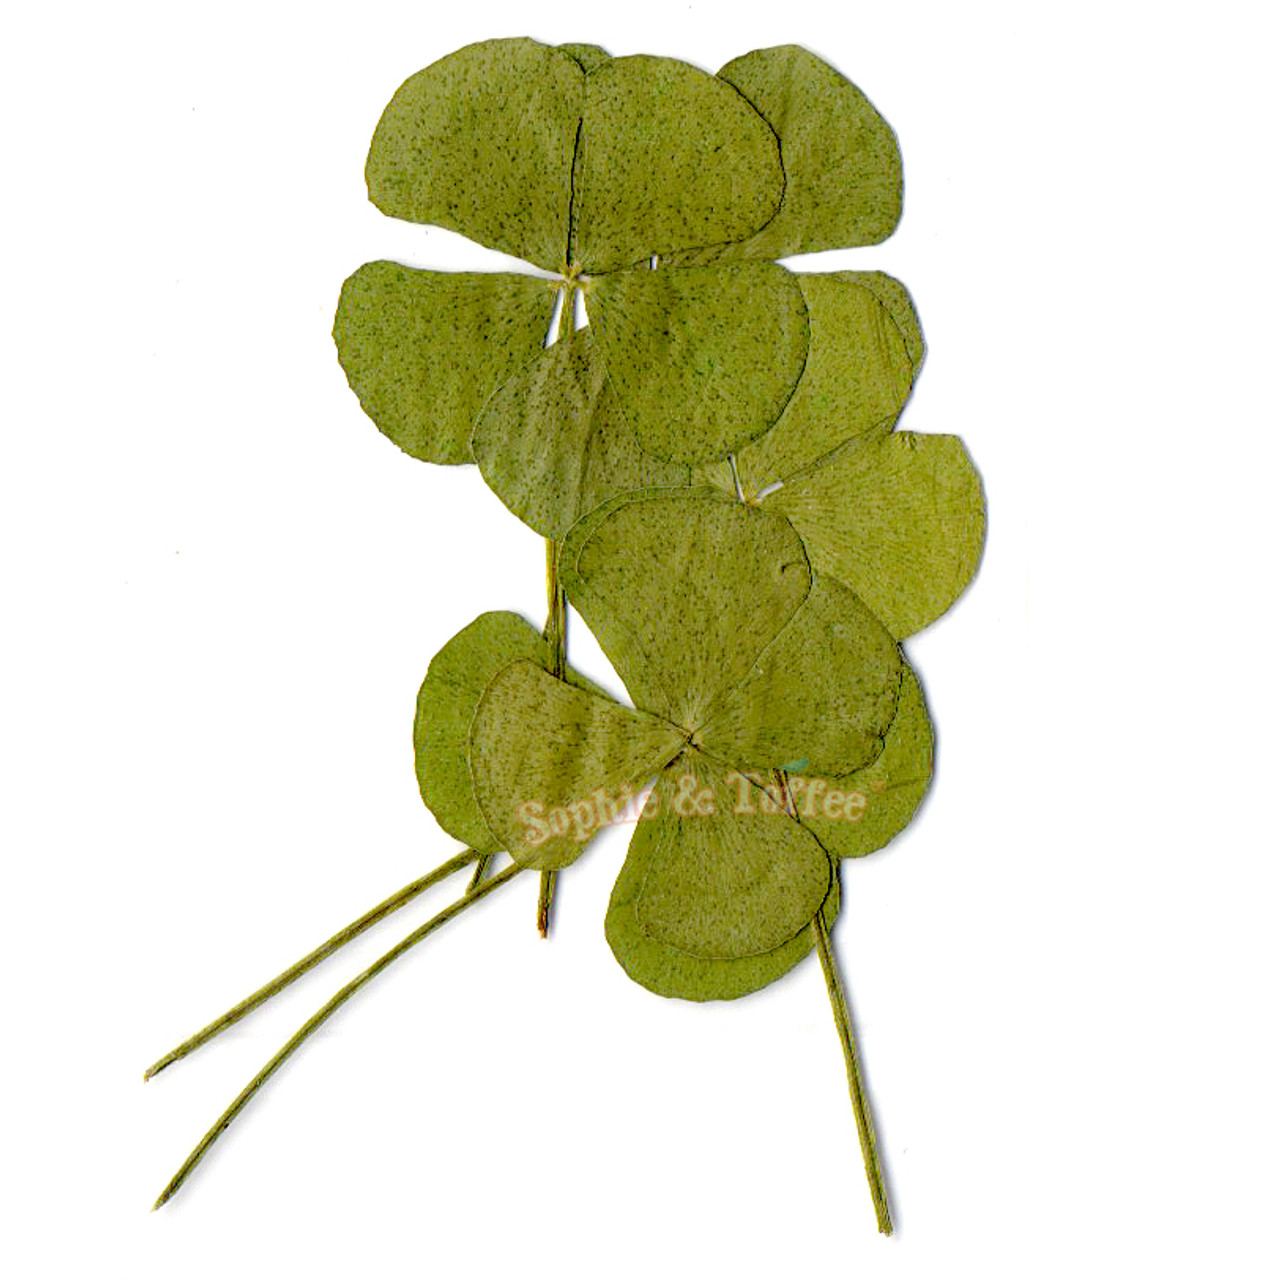 Clover Leaf Pressed Real Dried Leaves Pressed Flower Dried Flower Resin Flower Flower For Resin Craft Japanese Flower Flower For Crafting Flat Flowers